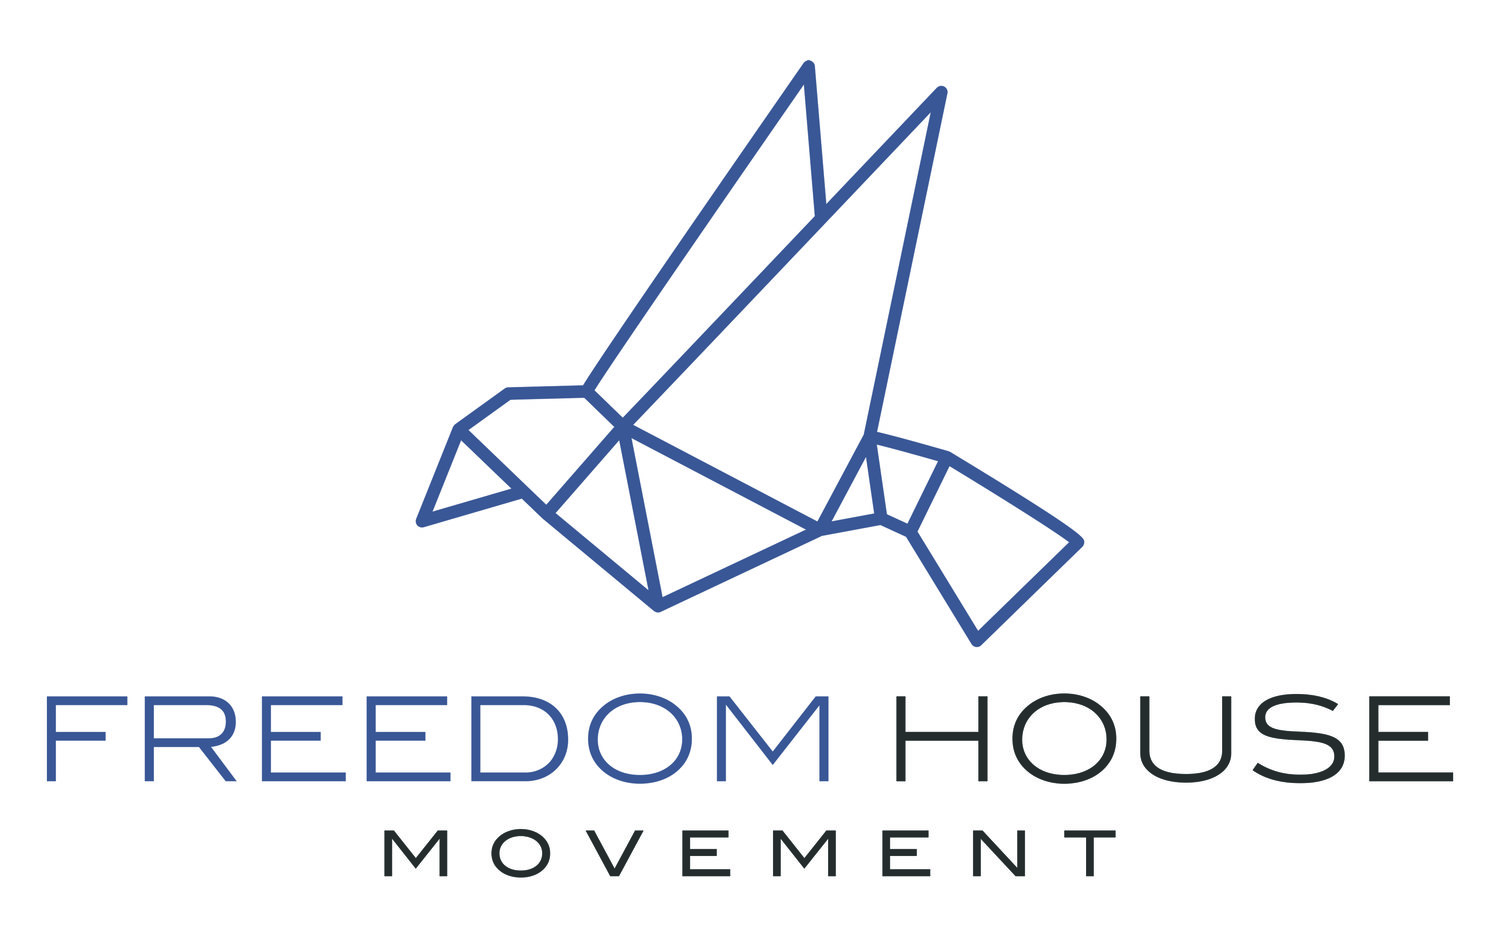 Freedom House Movement